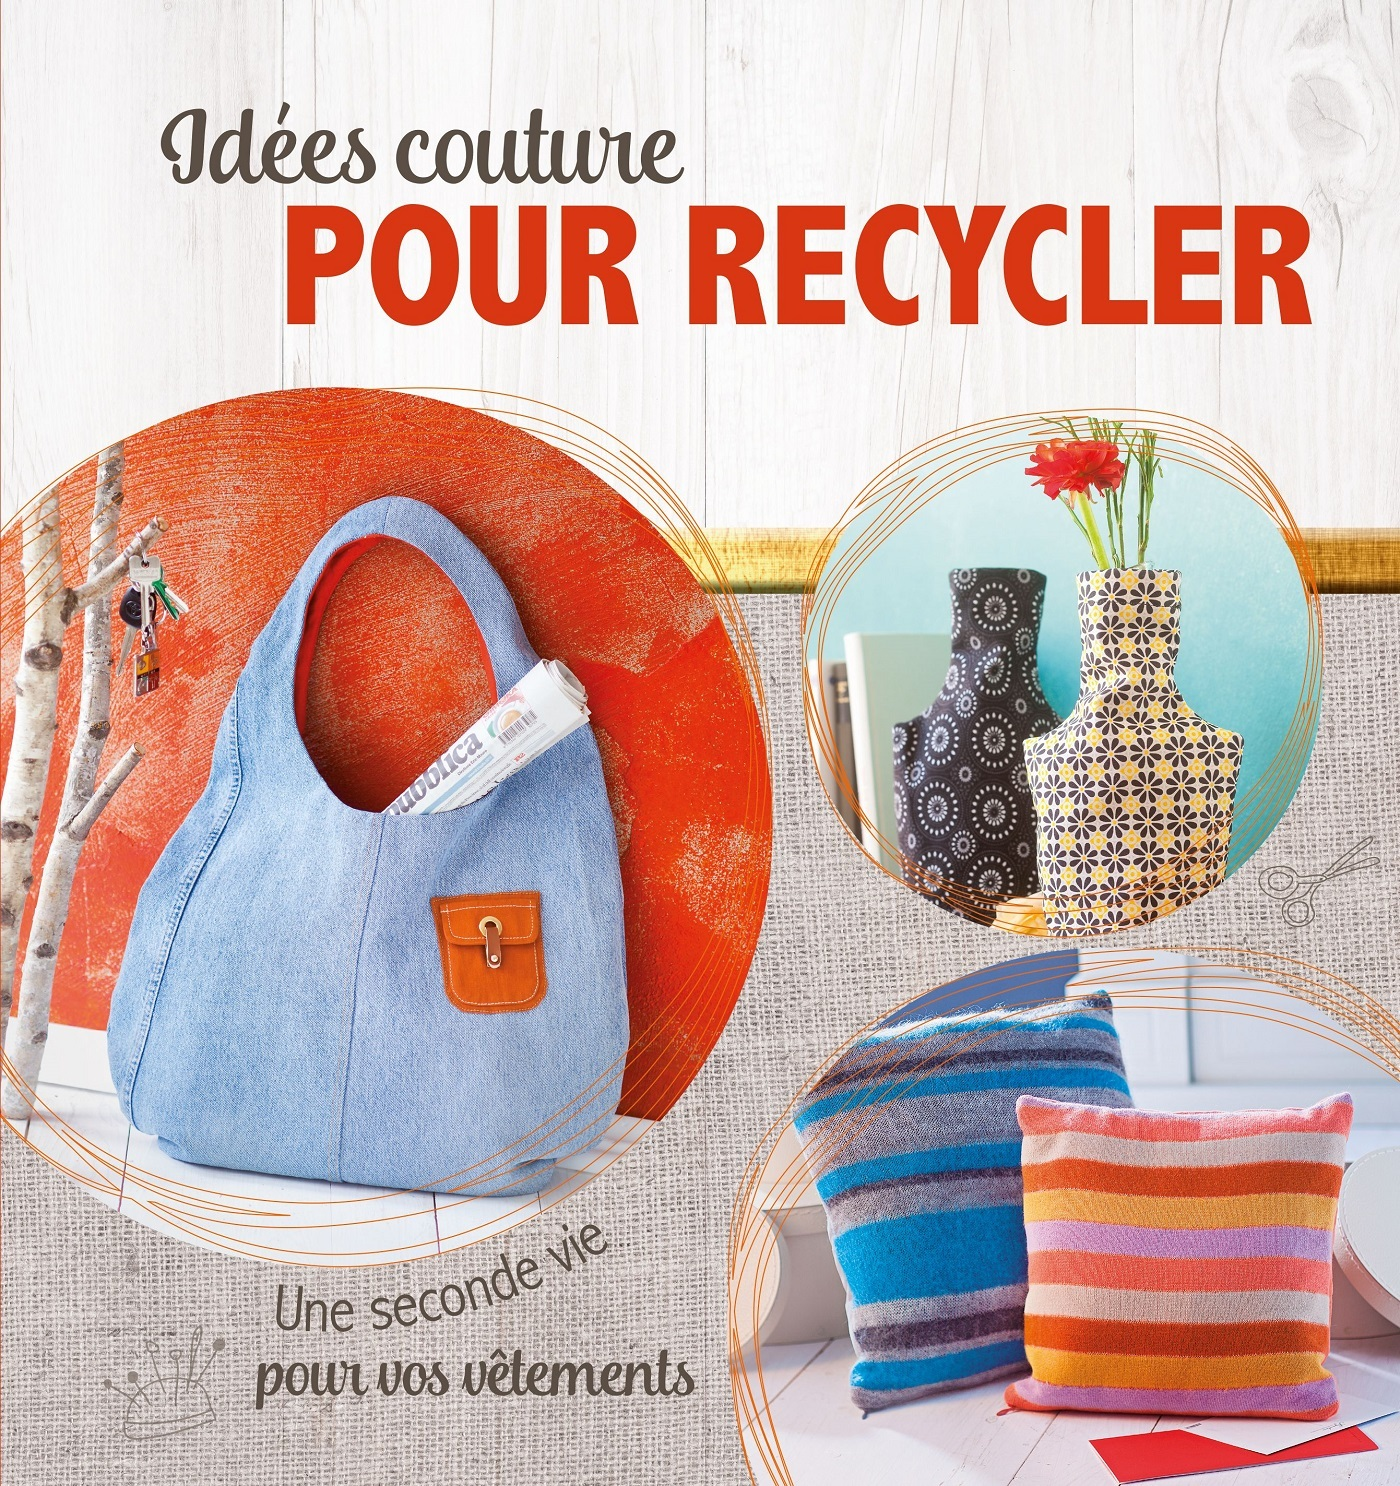 IDEES COUTURE POUR RECYCLER